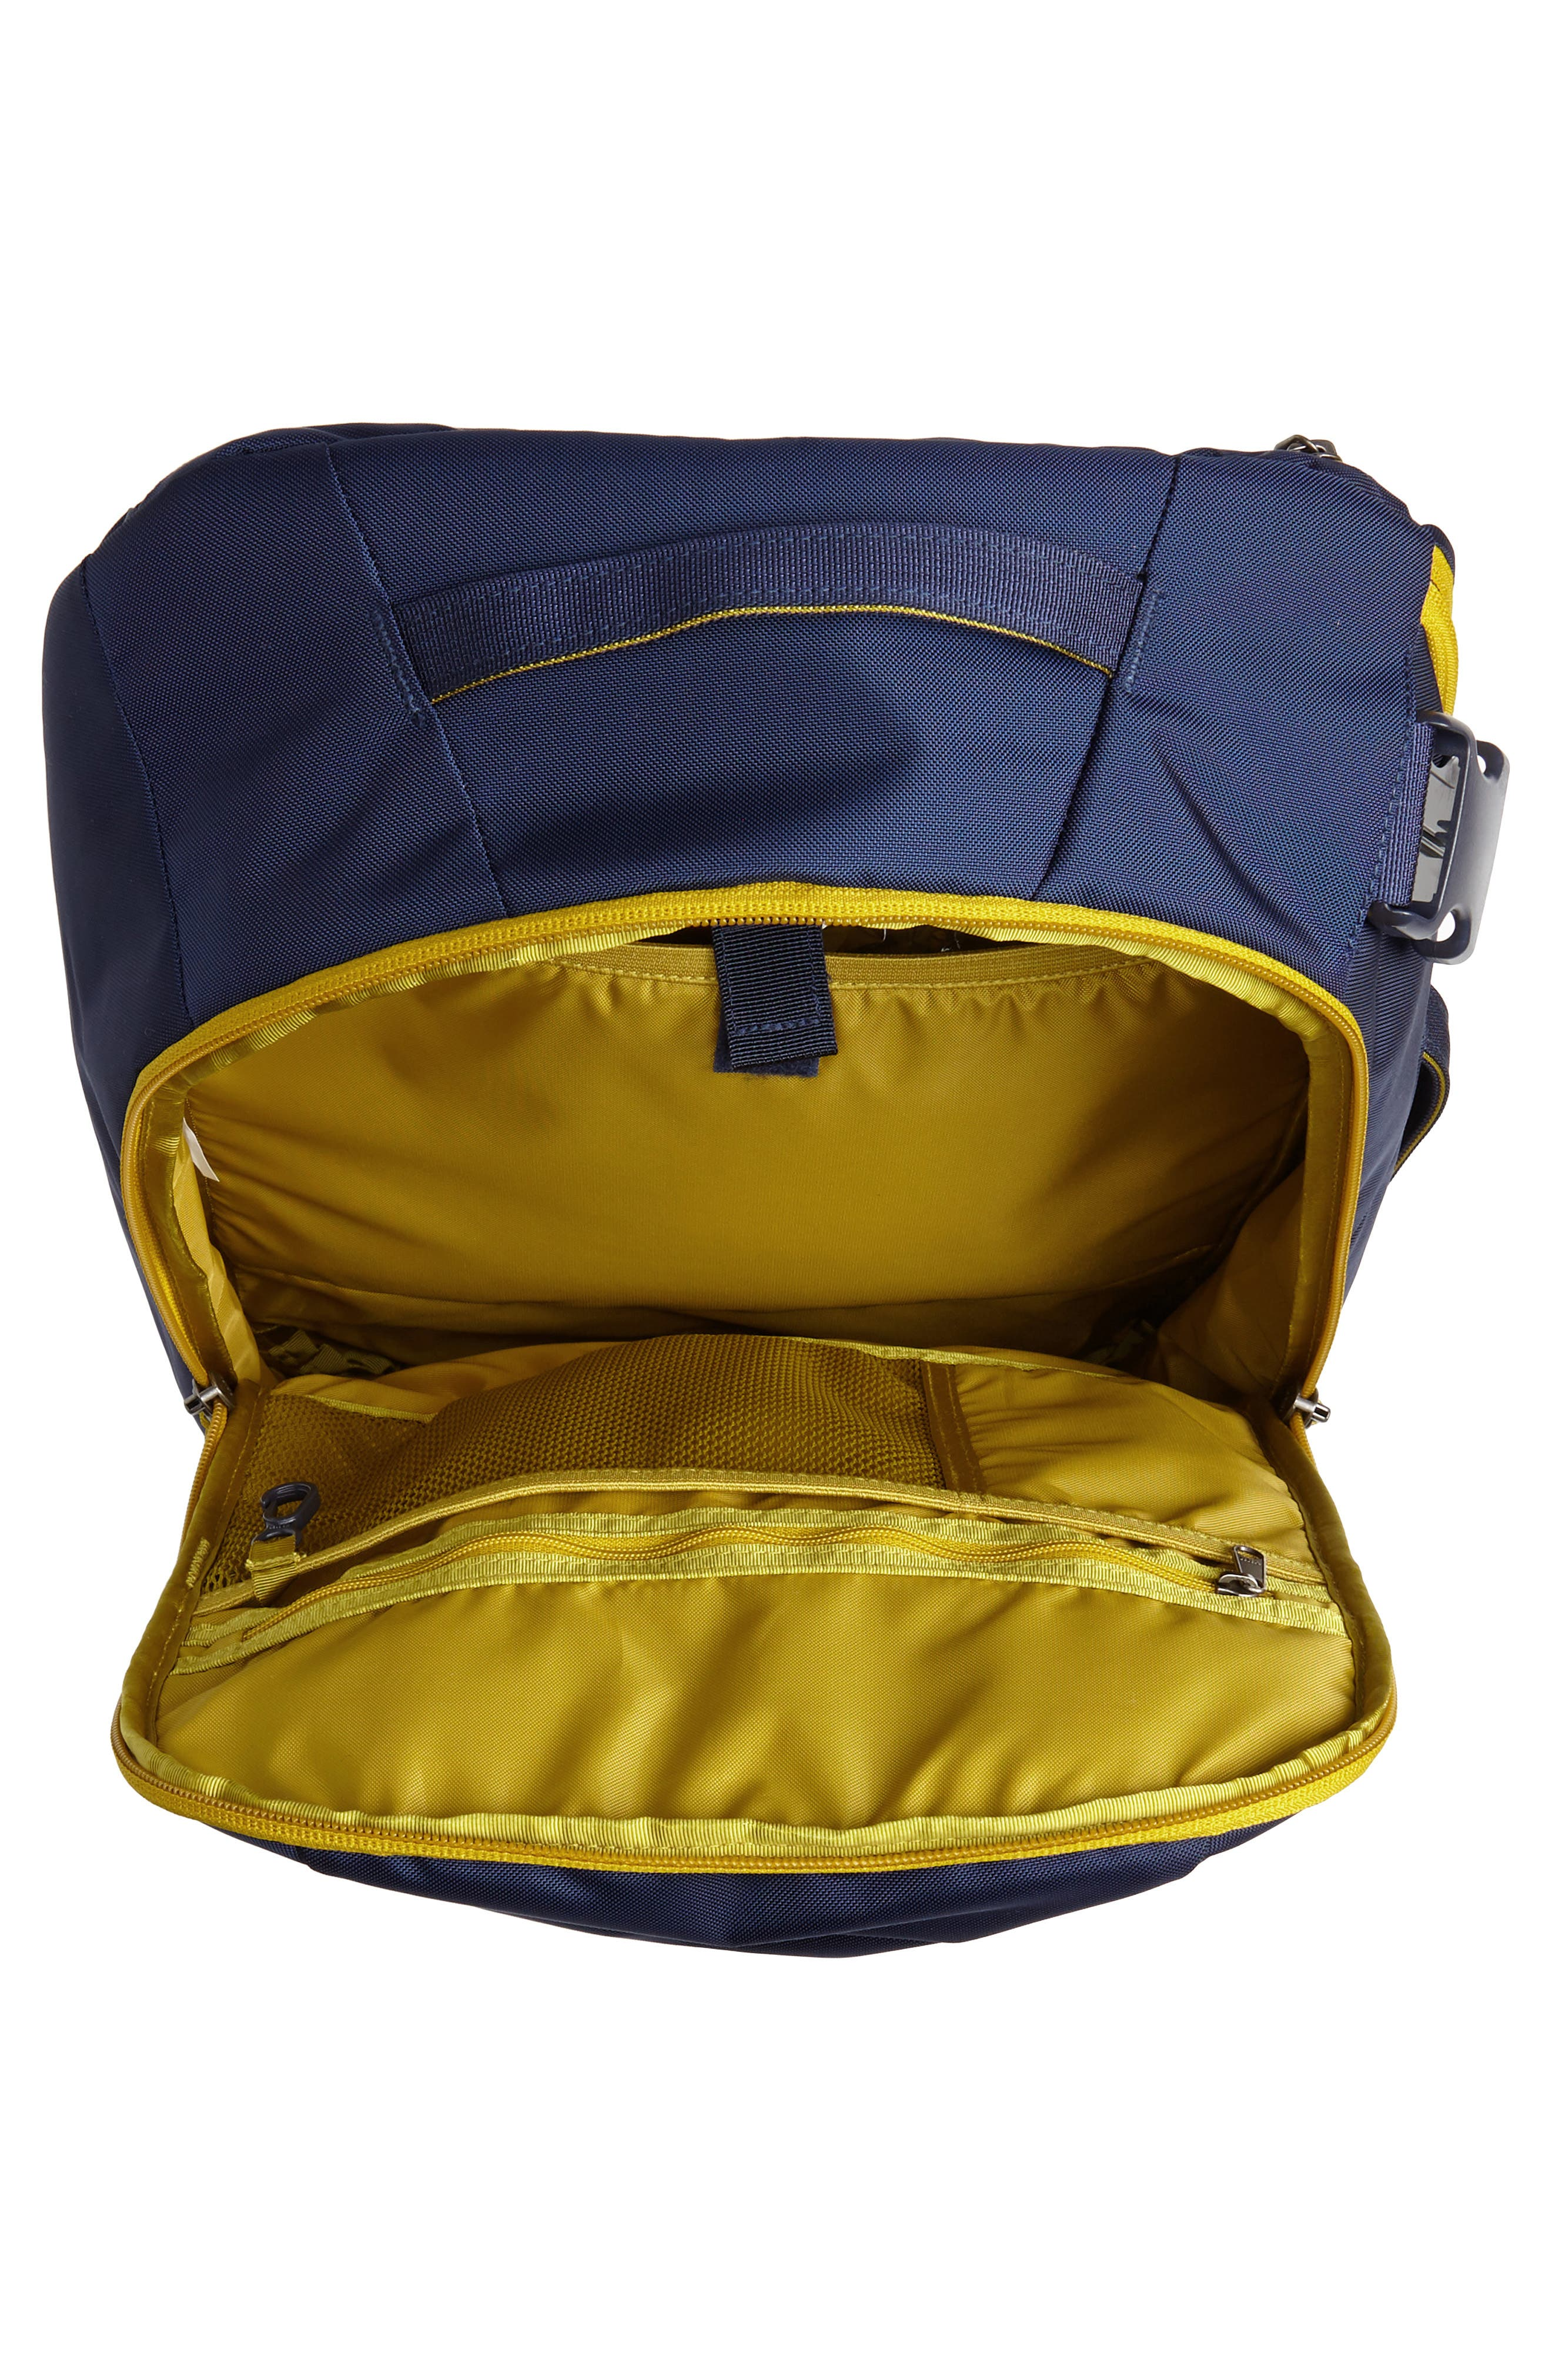 PATAGONIA,                             Tres 25-Liter Convertible Backpack,                             Alternate thumbnail 5, color,                             CLASSIC NAVY